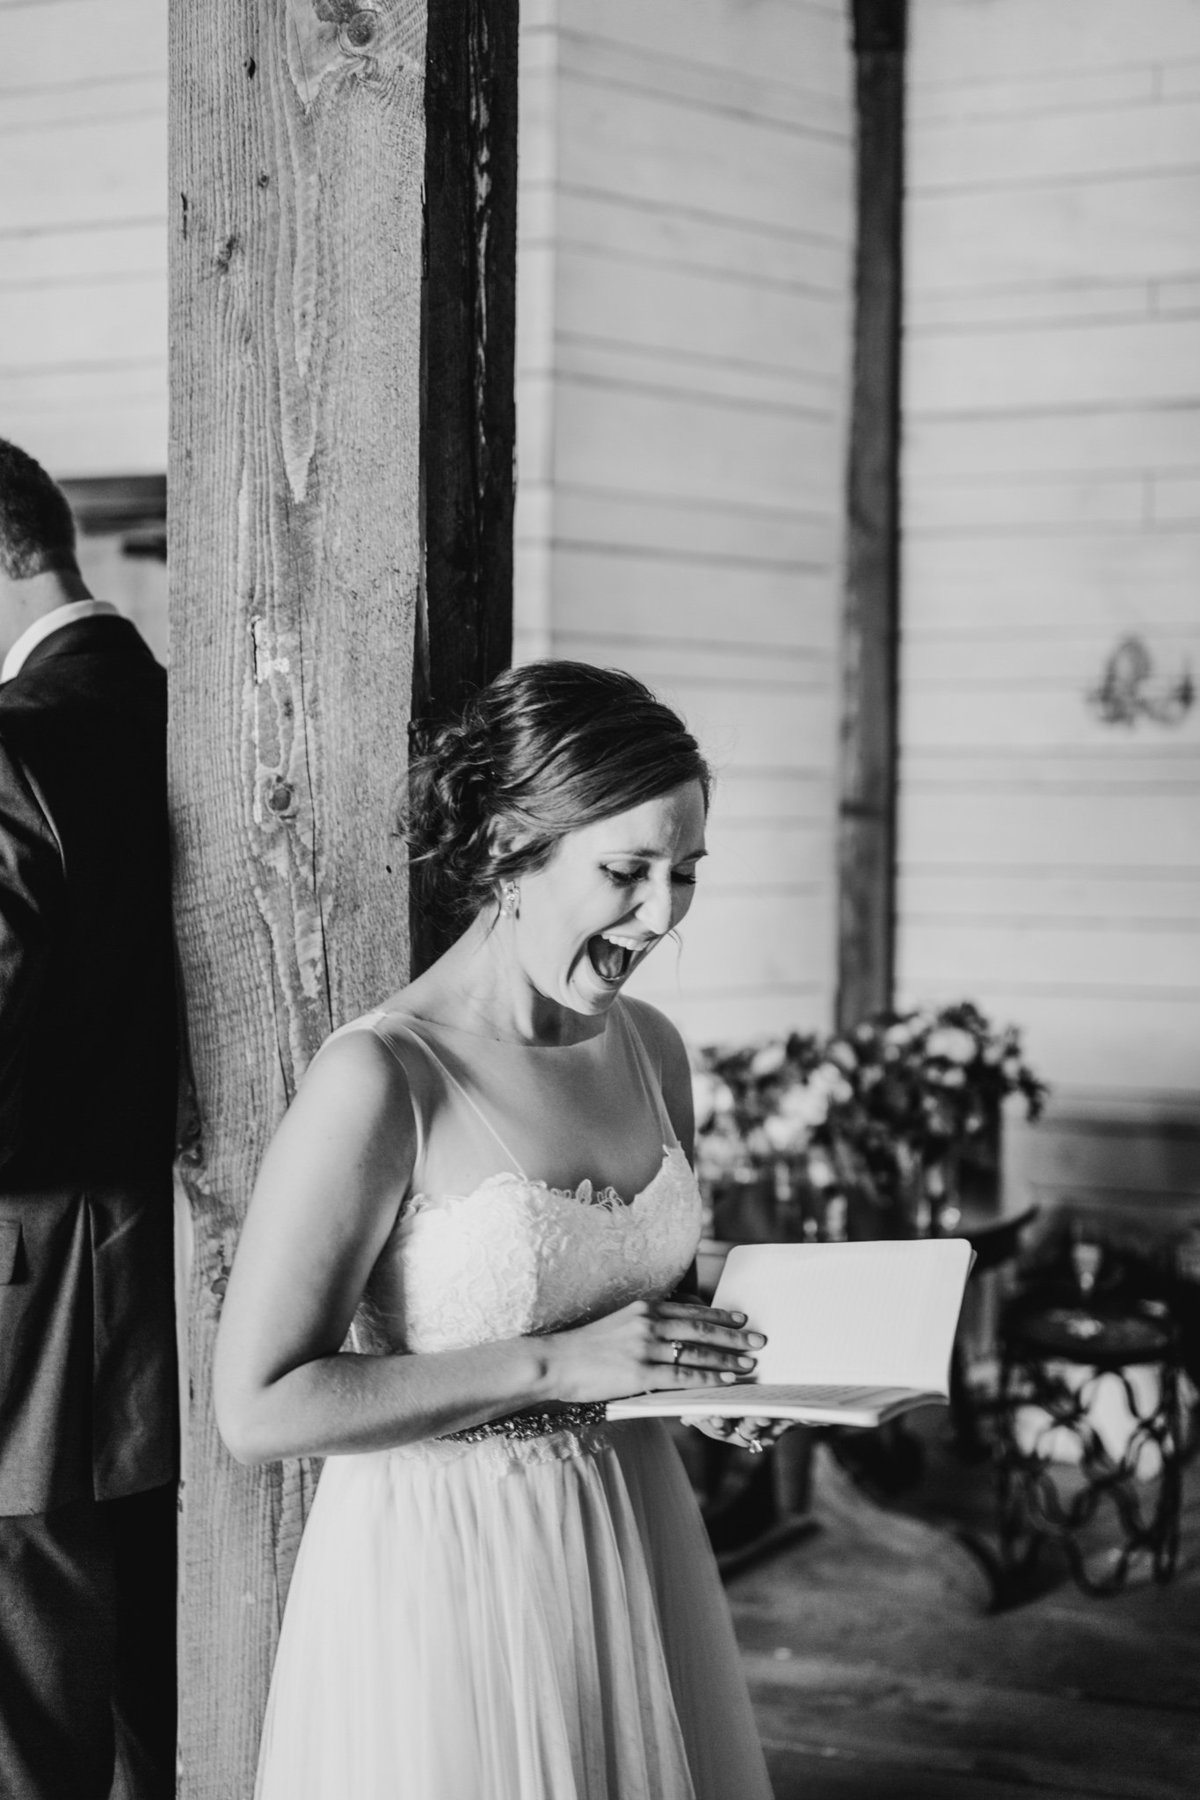 Alexa-Vossler-Photo_Dallas-Wedding-Photographer_North-Texas-Wedding-Photographer_Stephanie-Chase-Wedding-at-Morgan-Creek-Barn-Aubrey-Texas_59